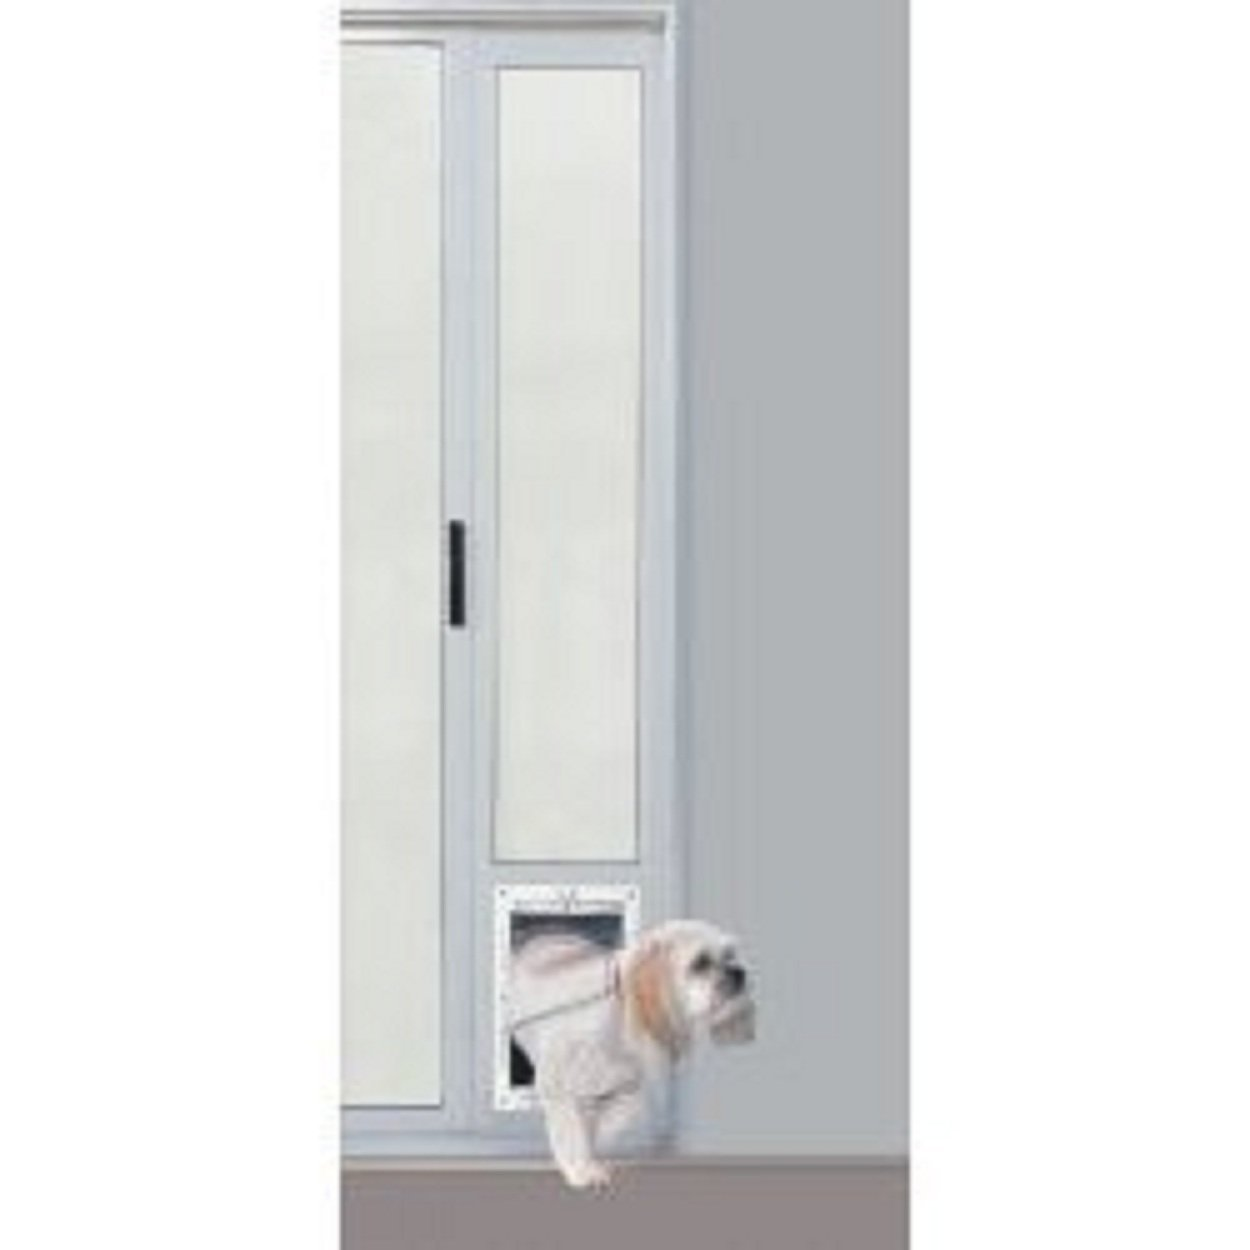 Ideal pet products fast fit patio door for pets medium for Ideal dog door